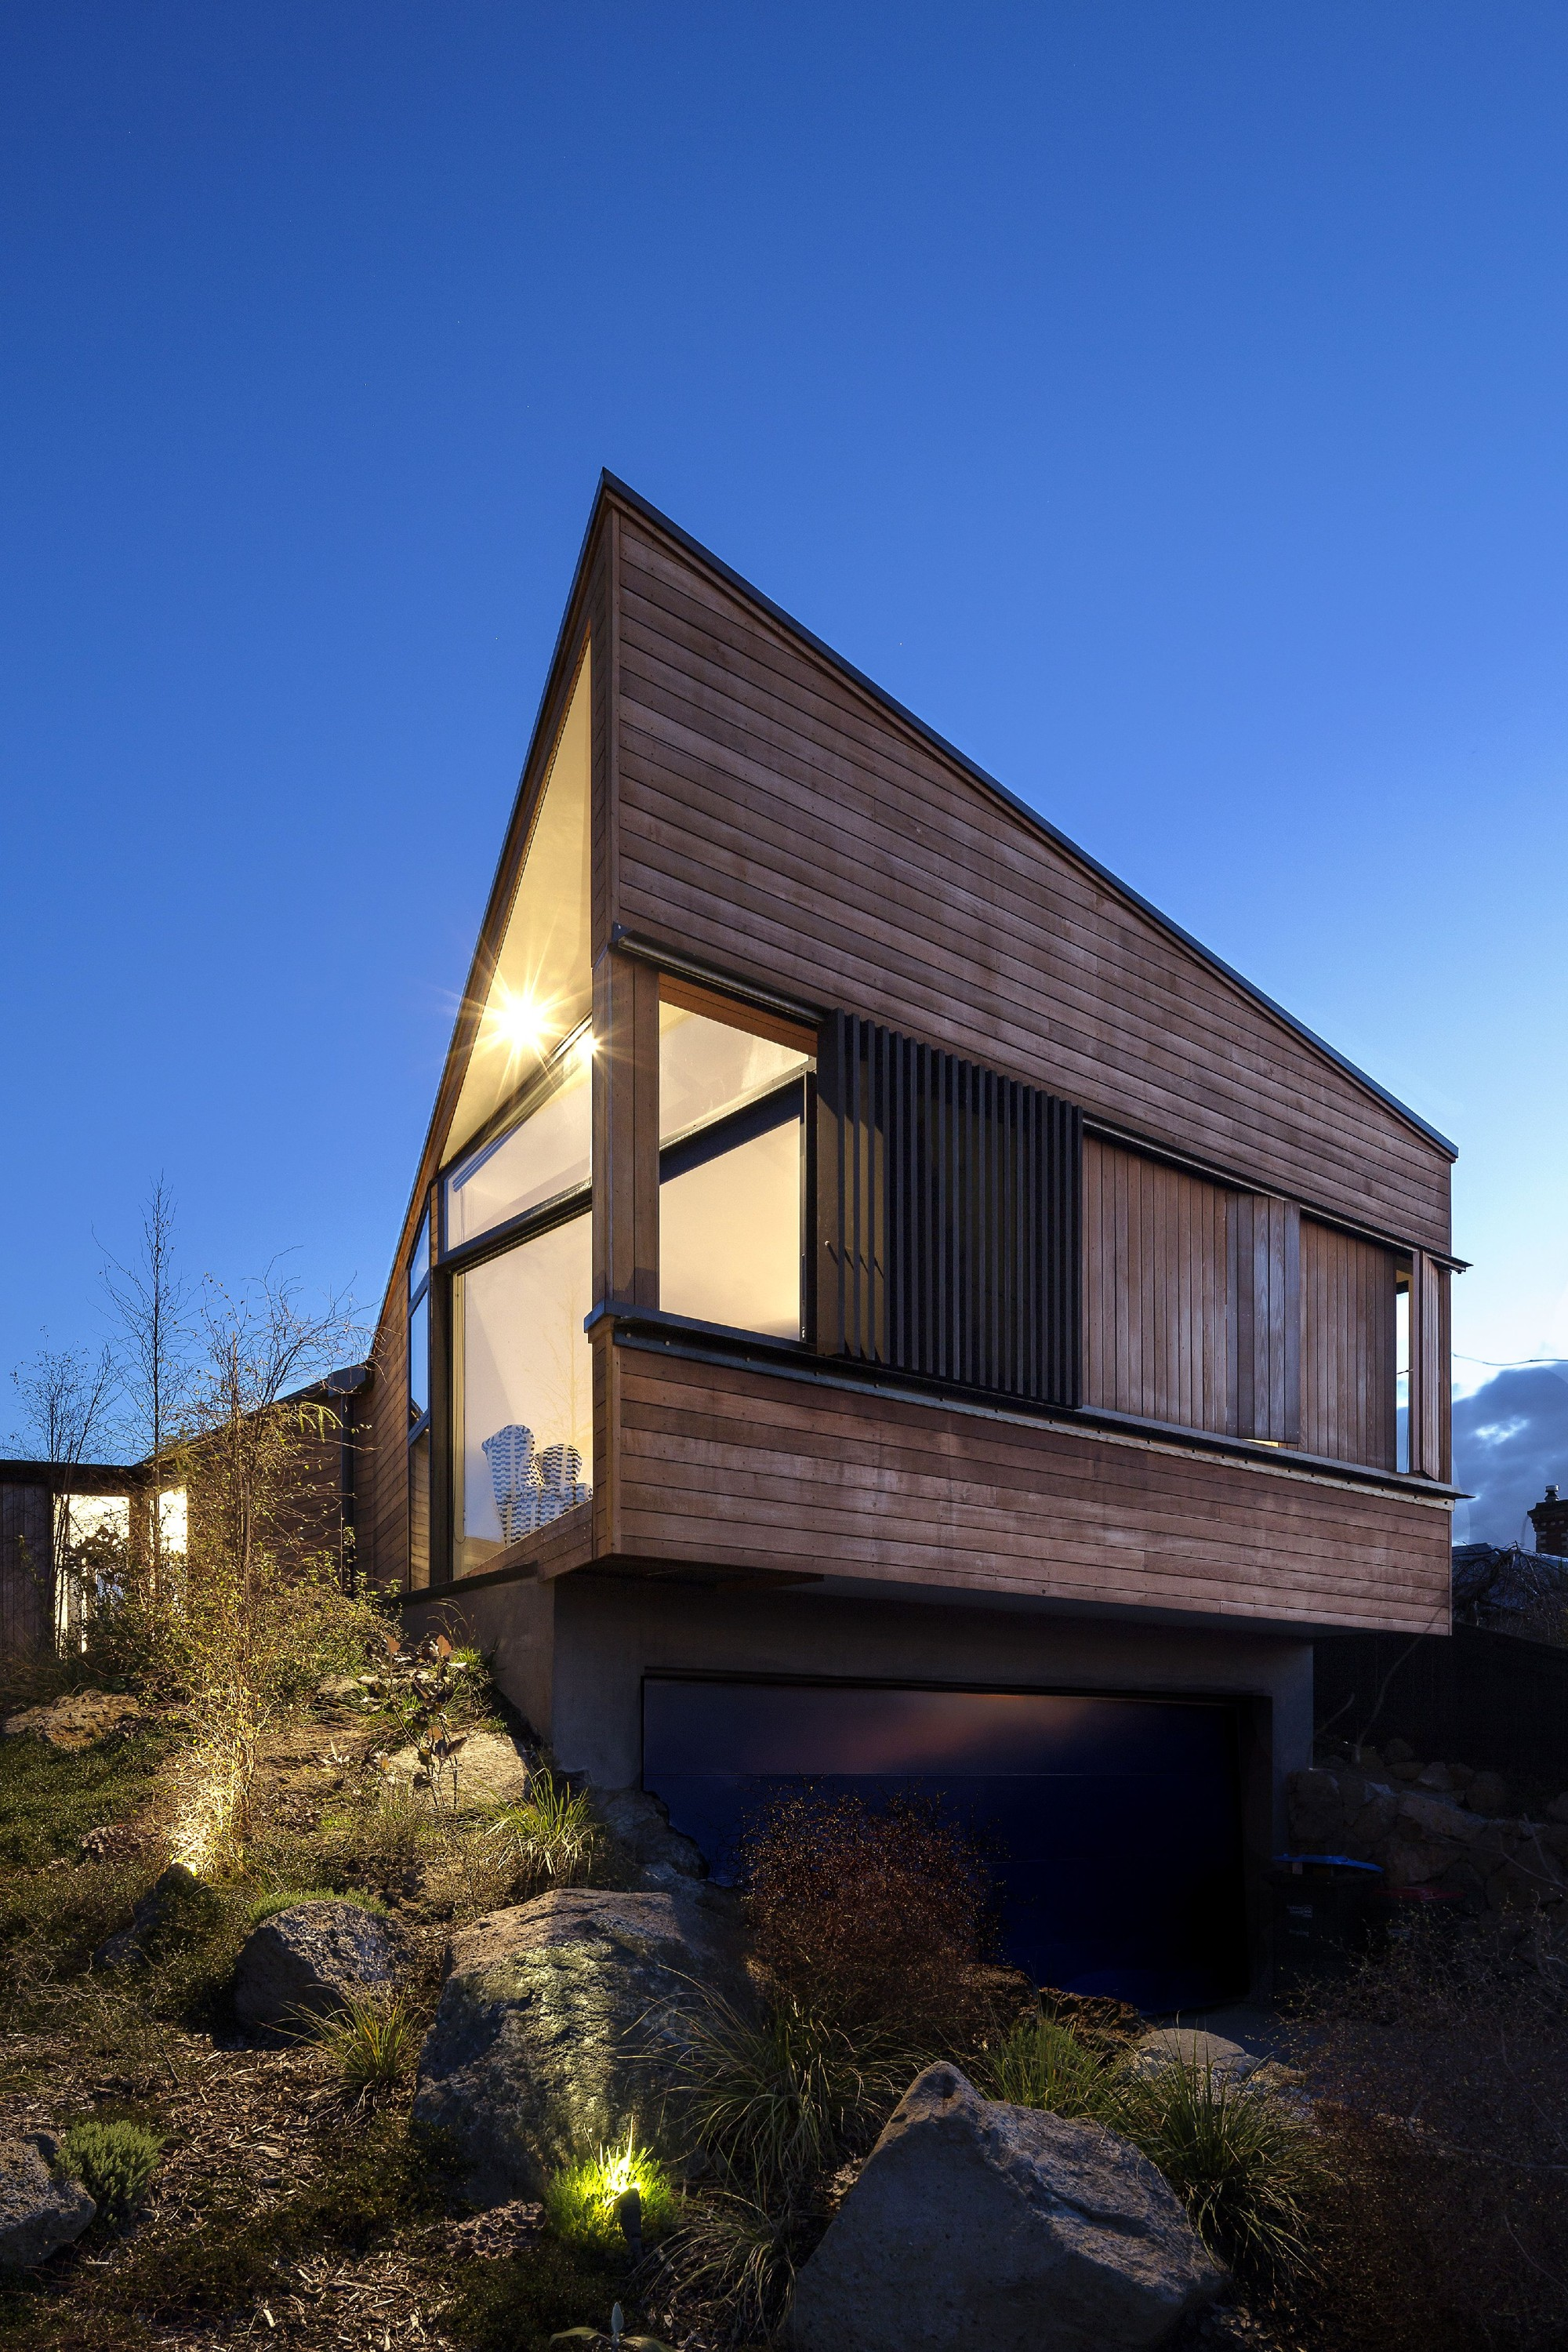 Gallery of new zealand architecture award winners 2013 for Award winning architects